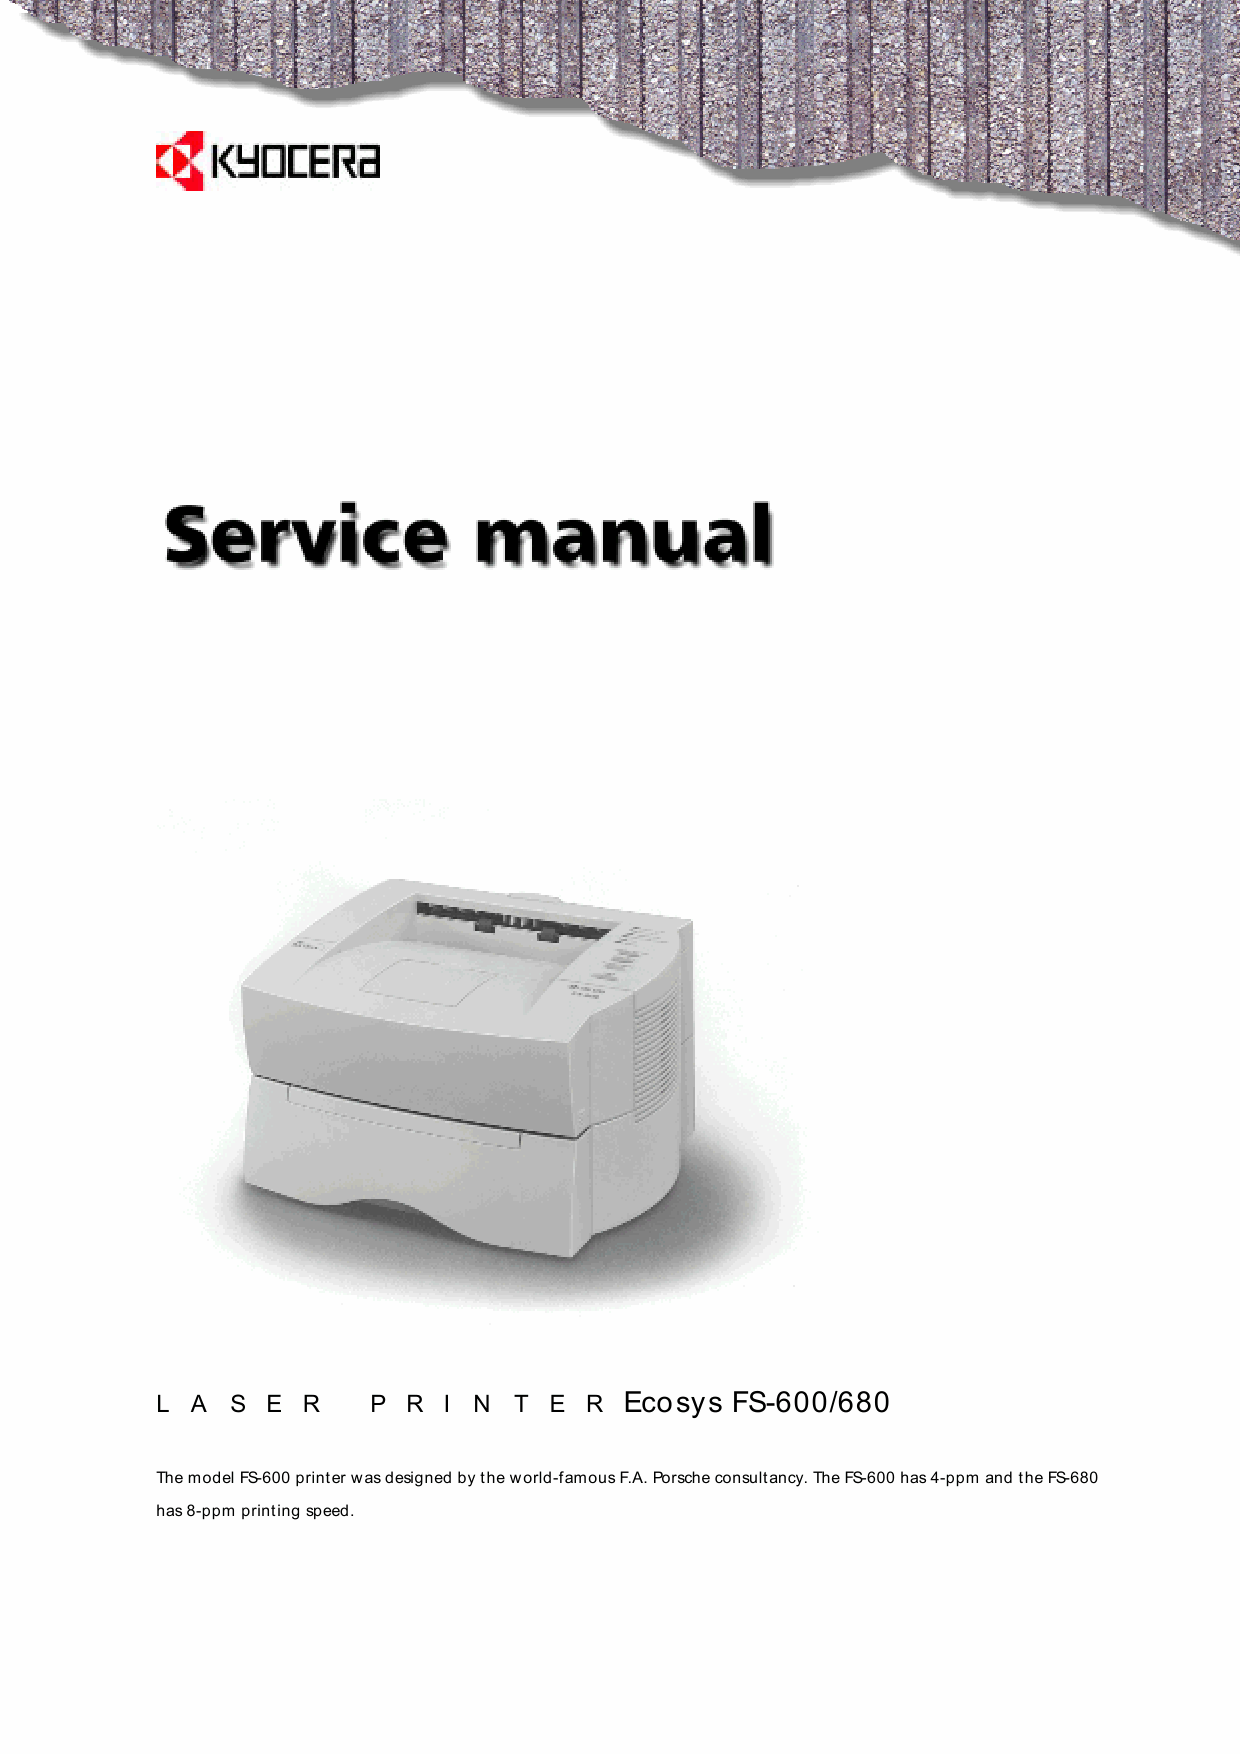 KYOCERA LaserPrinter FS-600 680 Parts and Service Manual-1